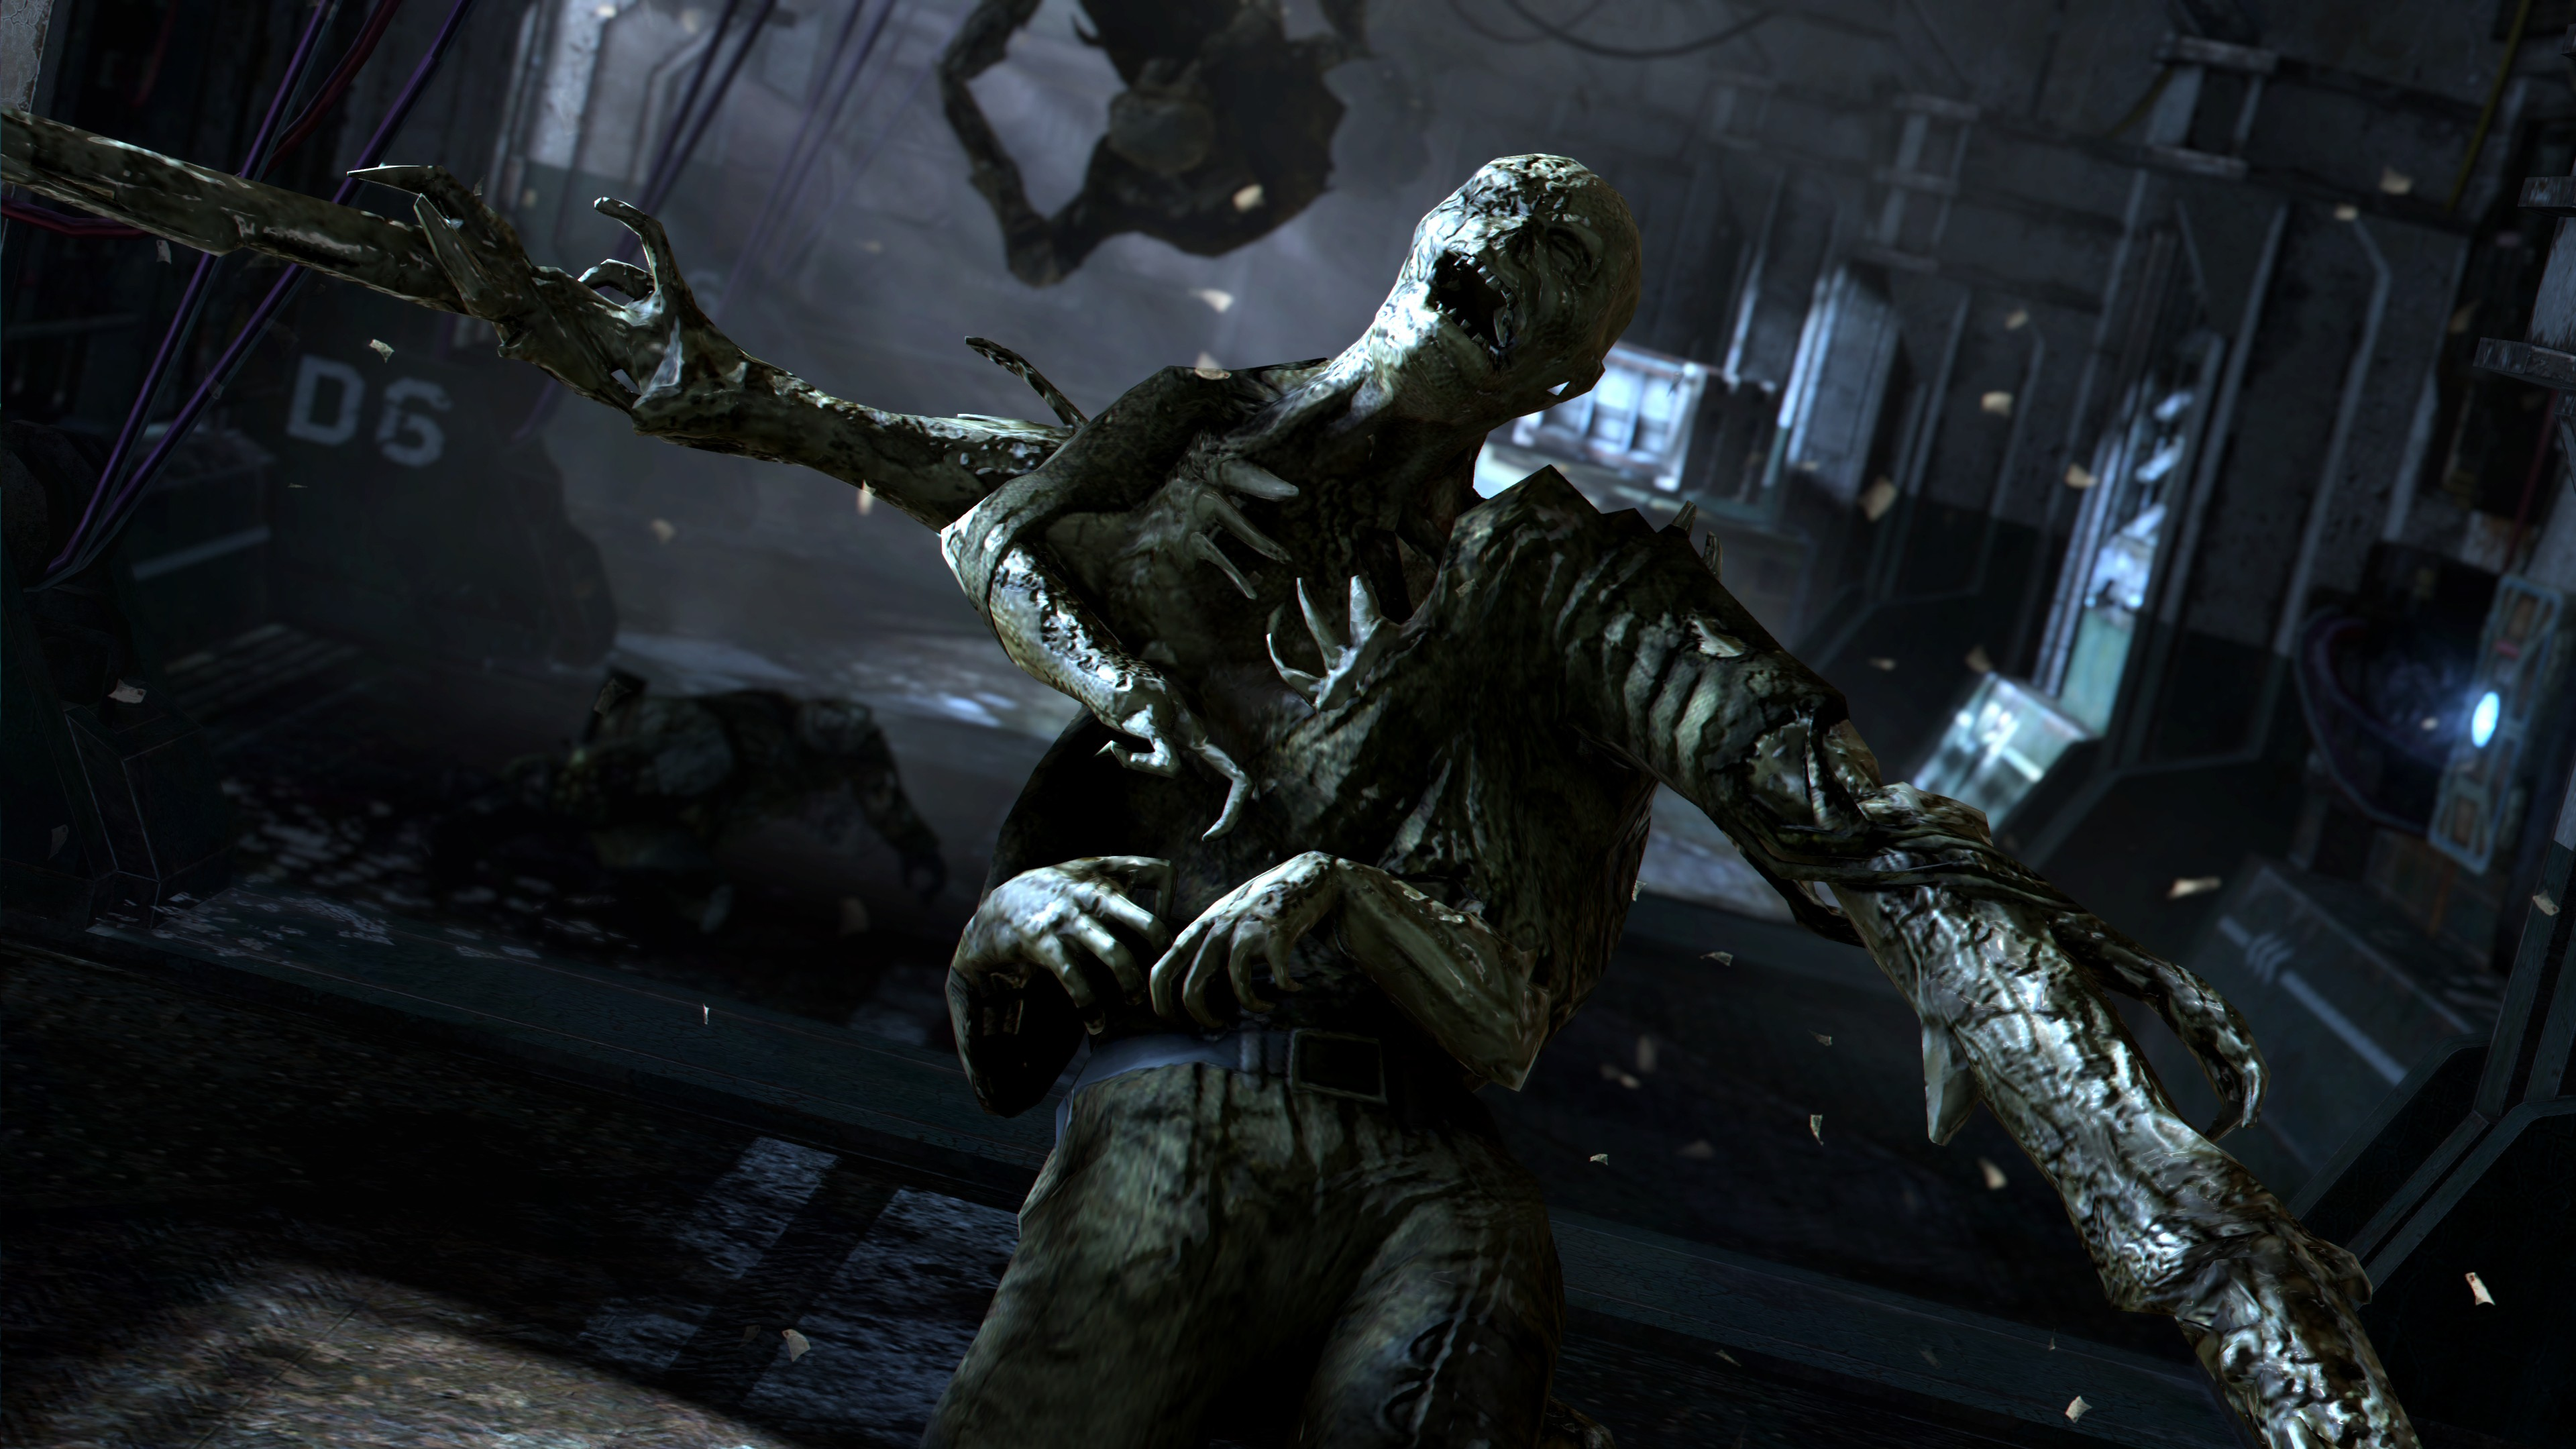 dead space 3 4k ultra hd wallpaper background image